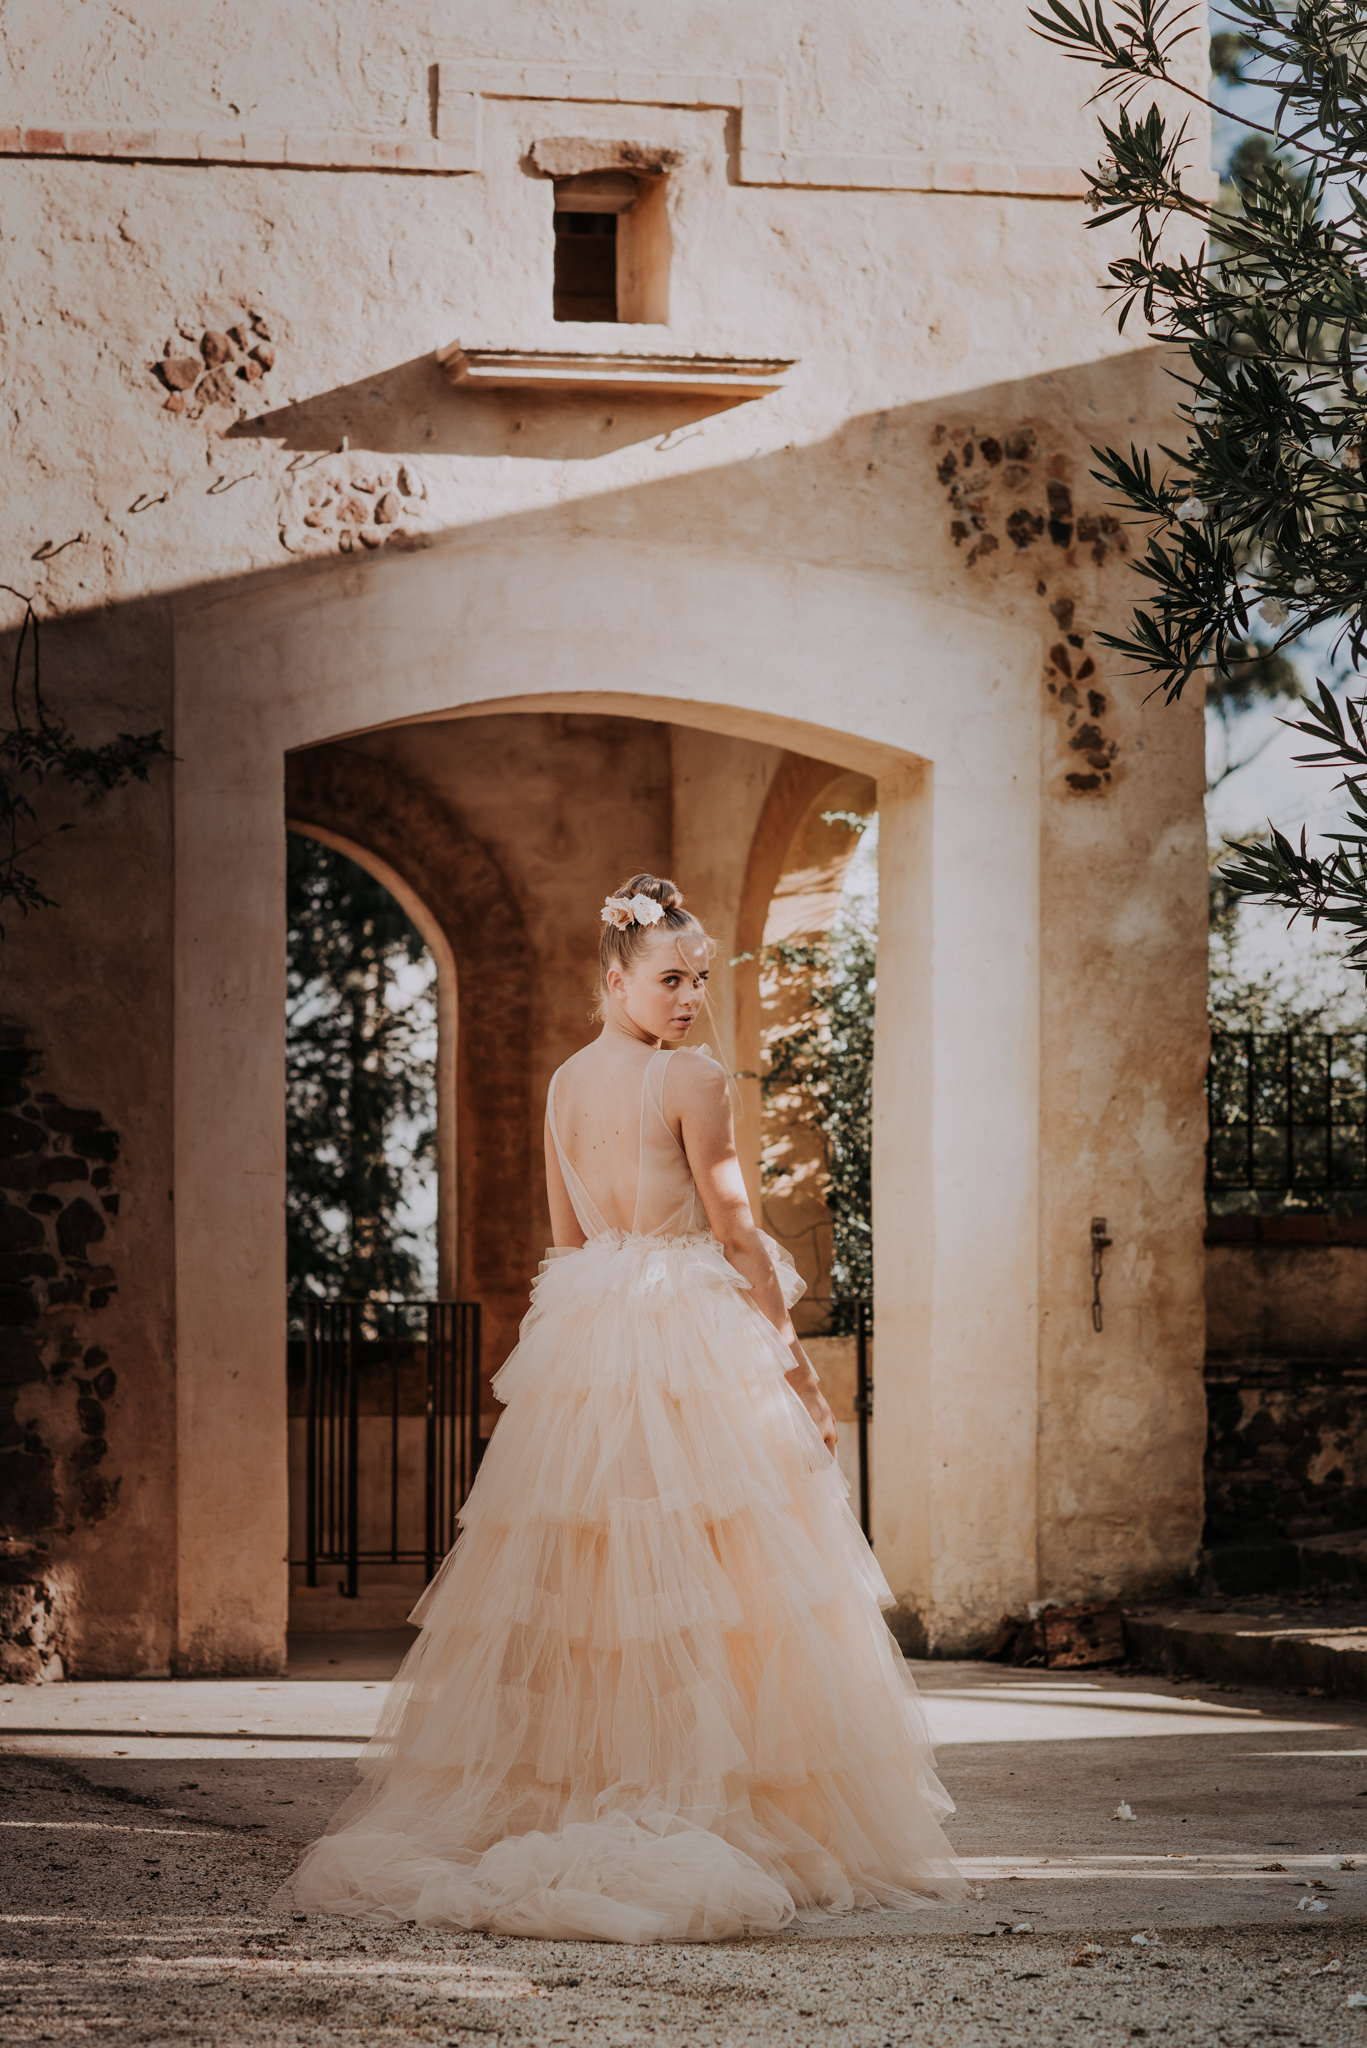 Lovelenscapes Photography X Ulyana Aster Bridal • Les Deux Belettes • Leigh McCoy • Bloodwood Botanica • Alena Iano • Alisa Rudnev • Demi Groot • Jessie Lockley • Maddison Ruby • 102.jpg